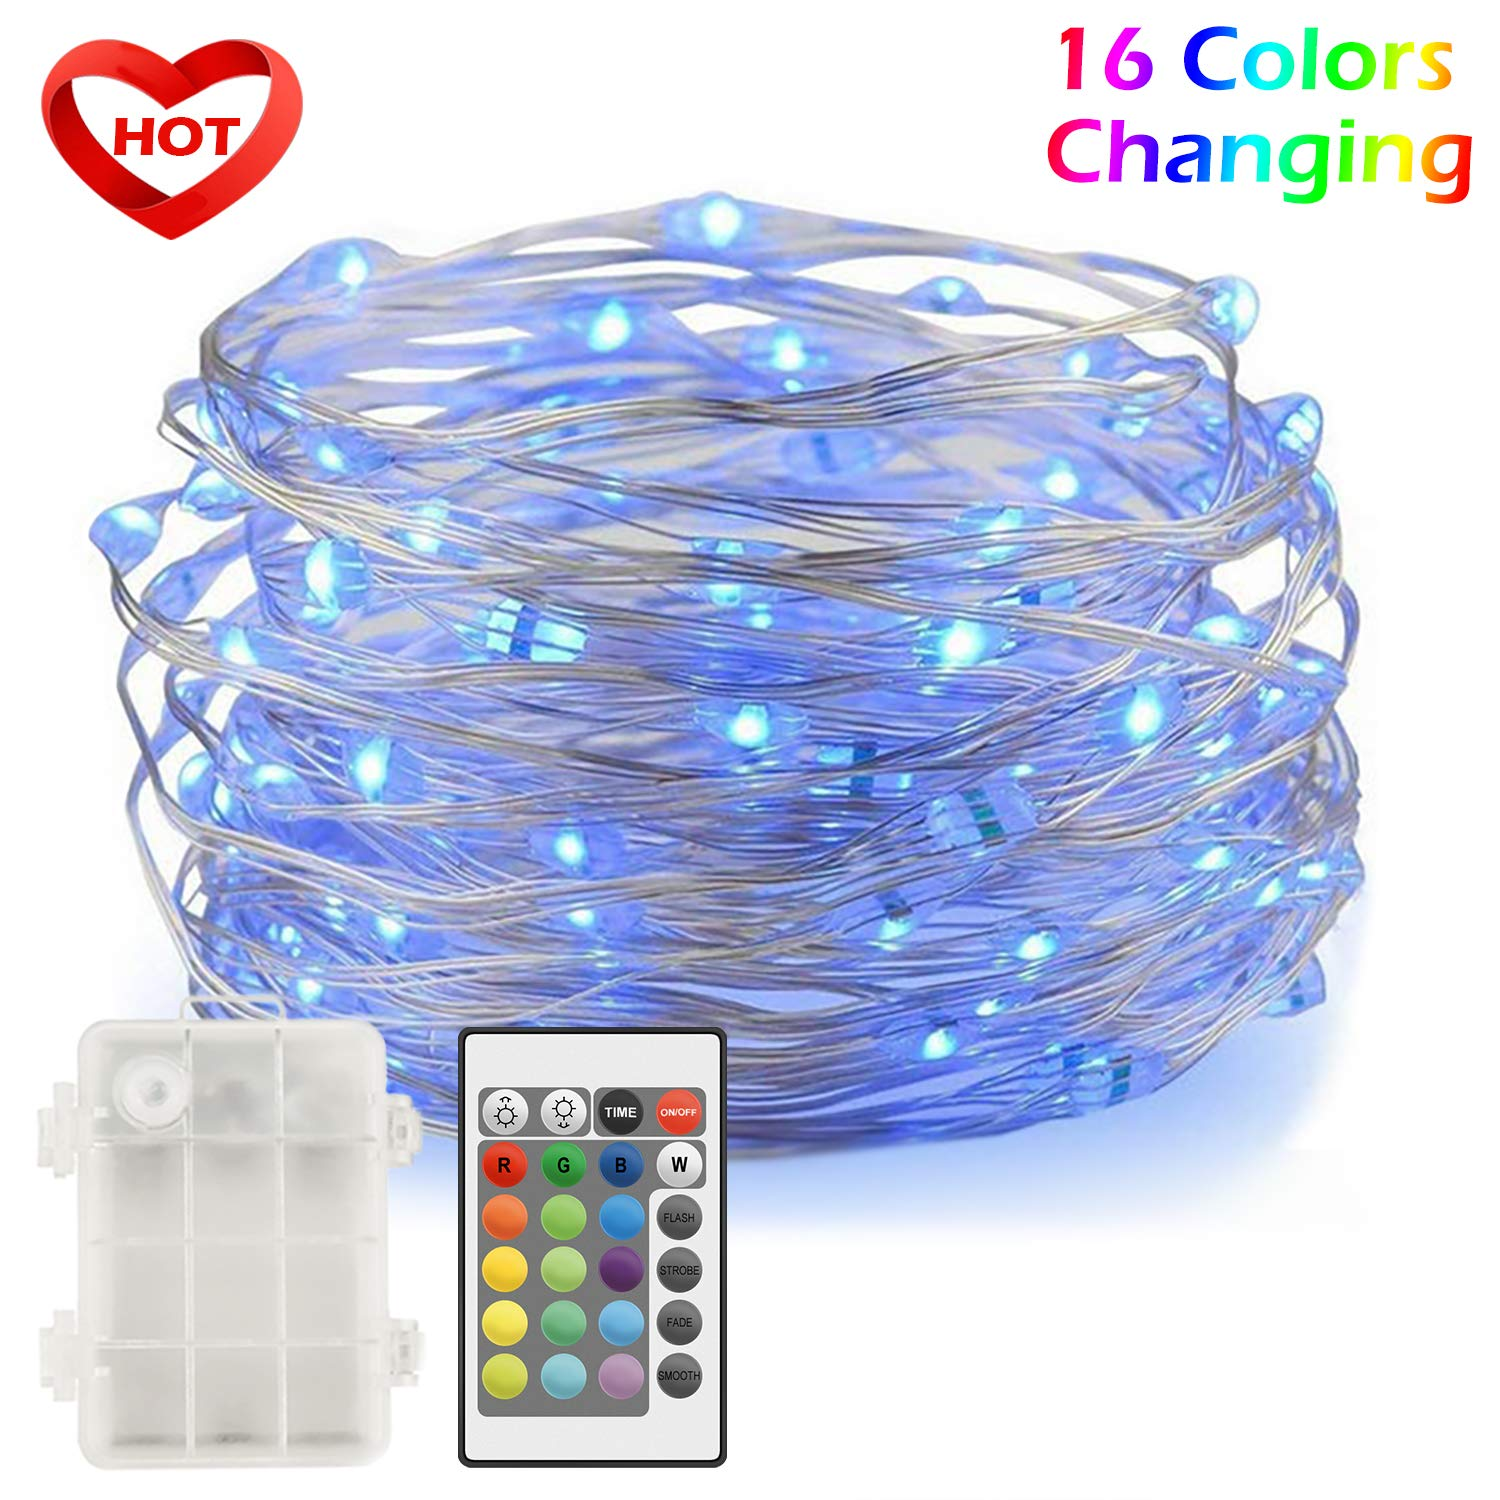 Ylife LED Fairy Lights, 16.4ft 50 LED Waterproof String Lights, Multi Colors Changing,Decorative Sliver Wire Mini Lights Battery Operated, Best for Bedroom Festival Christmas Wedding Party